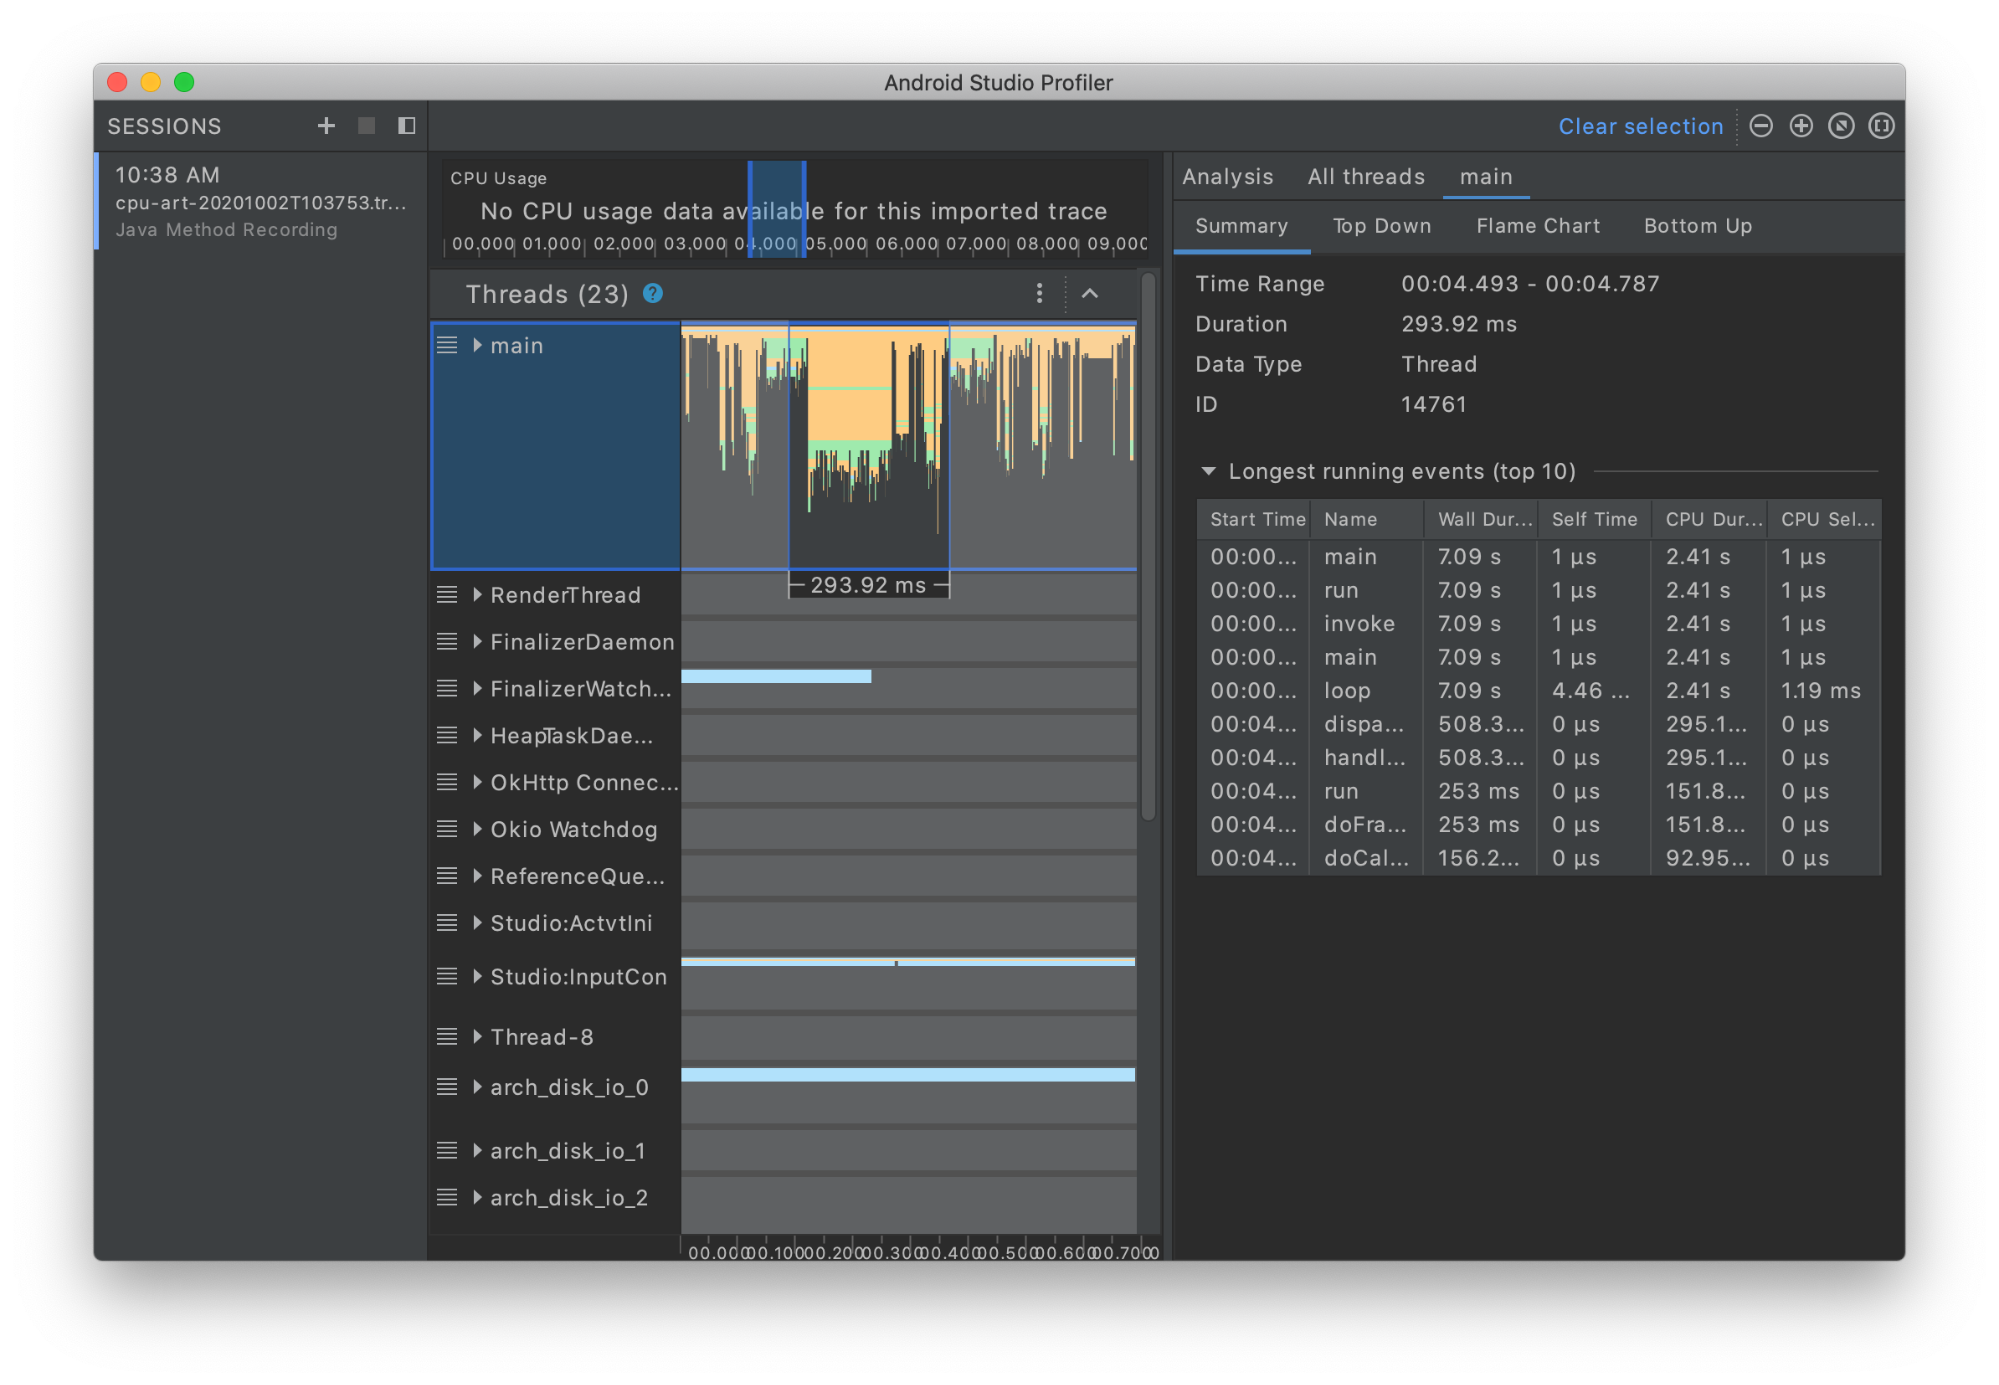 Standalone Android Studio profiler